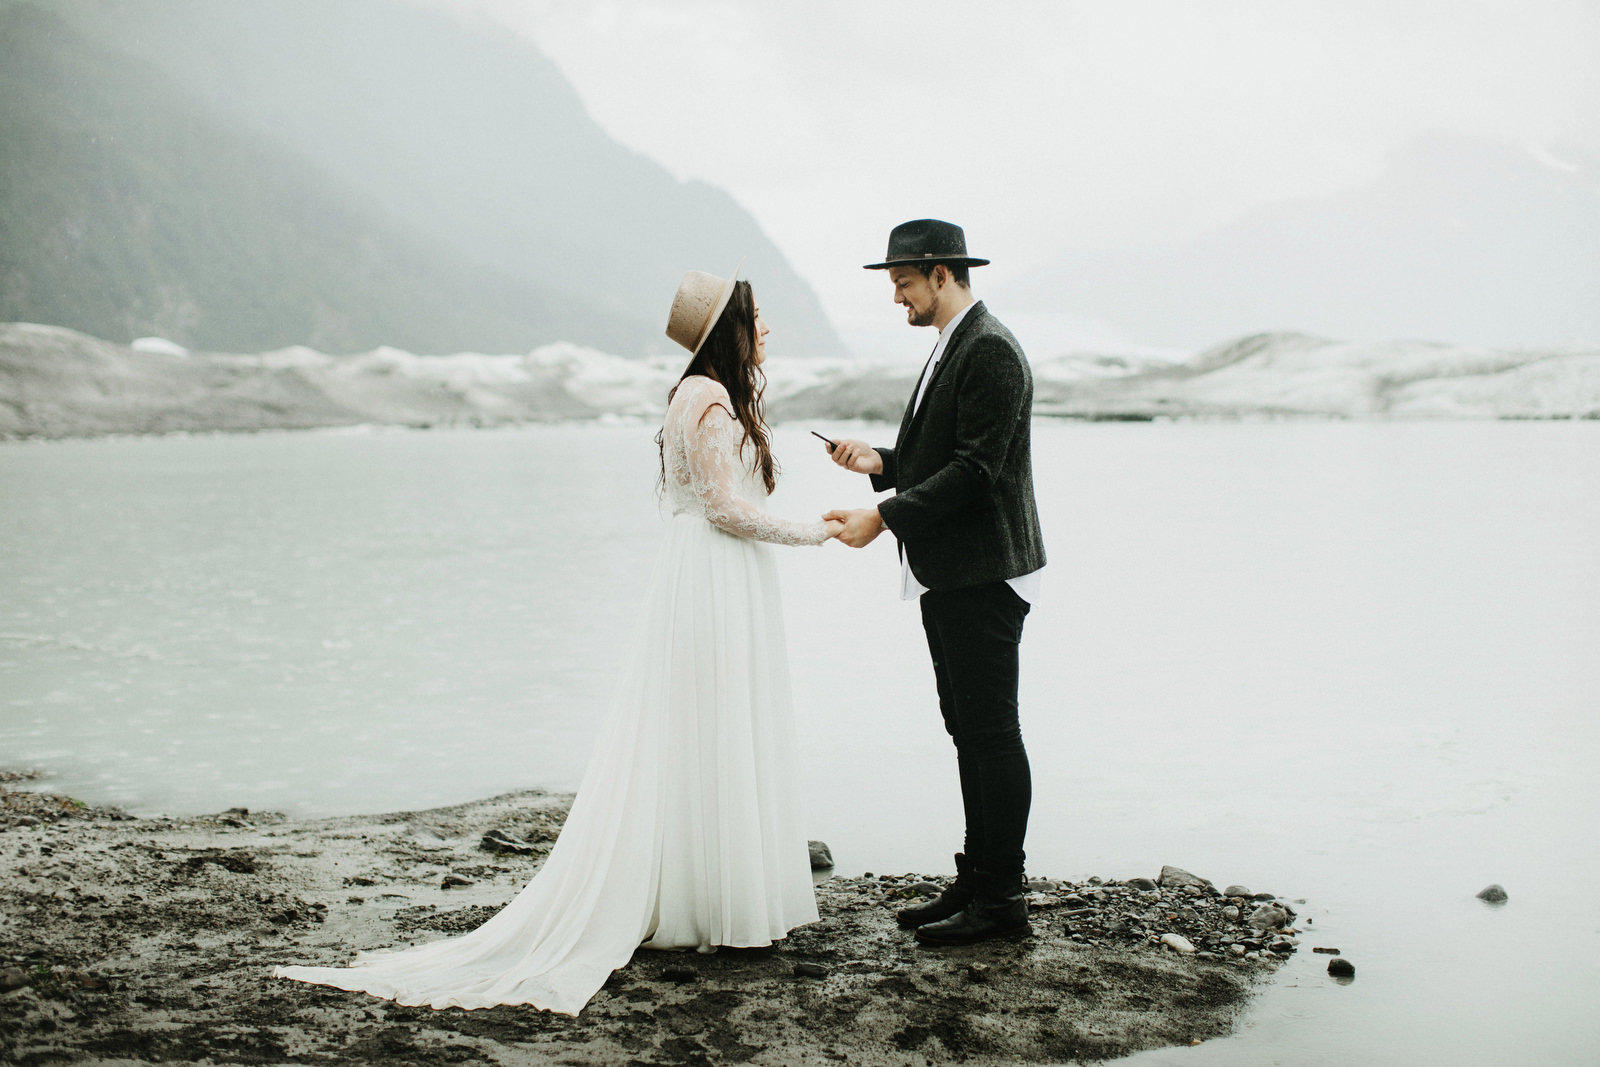 athena-and-camron-alaska-elopement-wedding-inspiration-india-earl-athena-grace-glacier-lagoon-wedding81